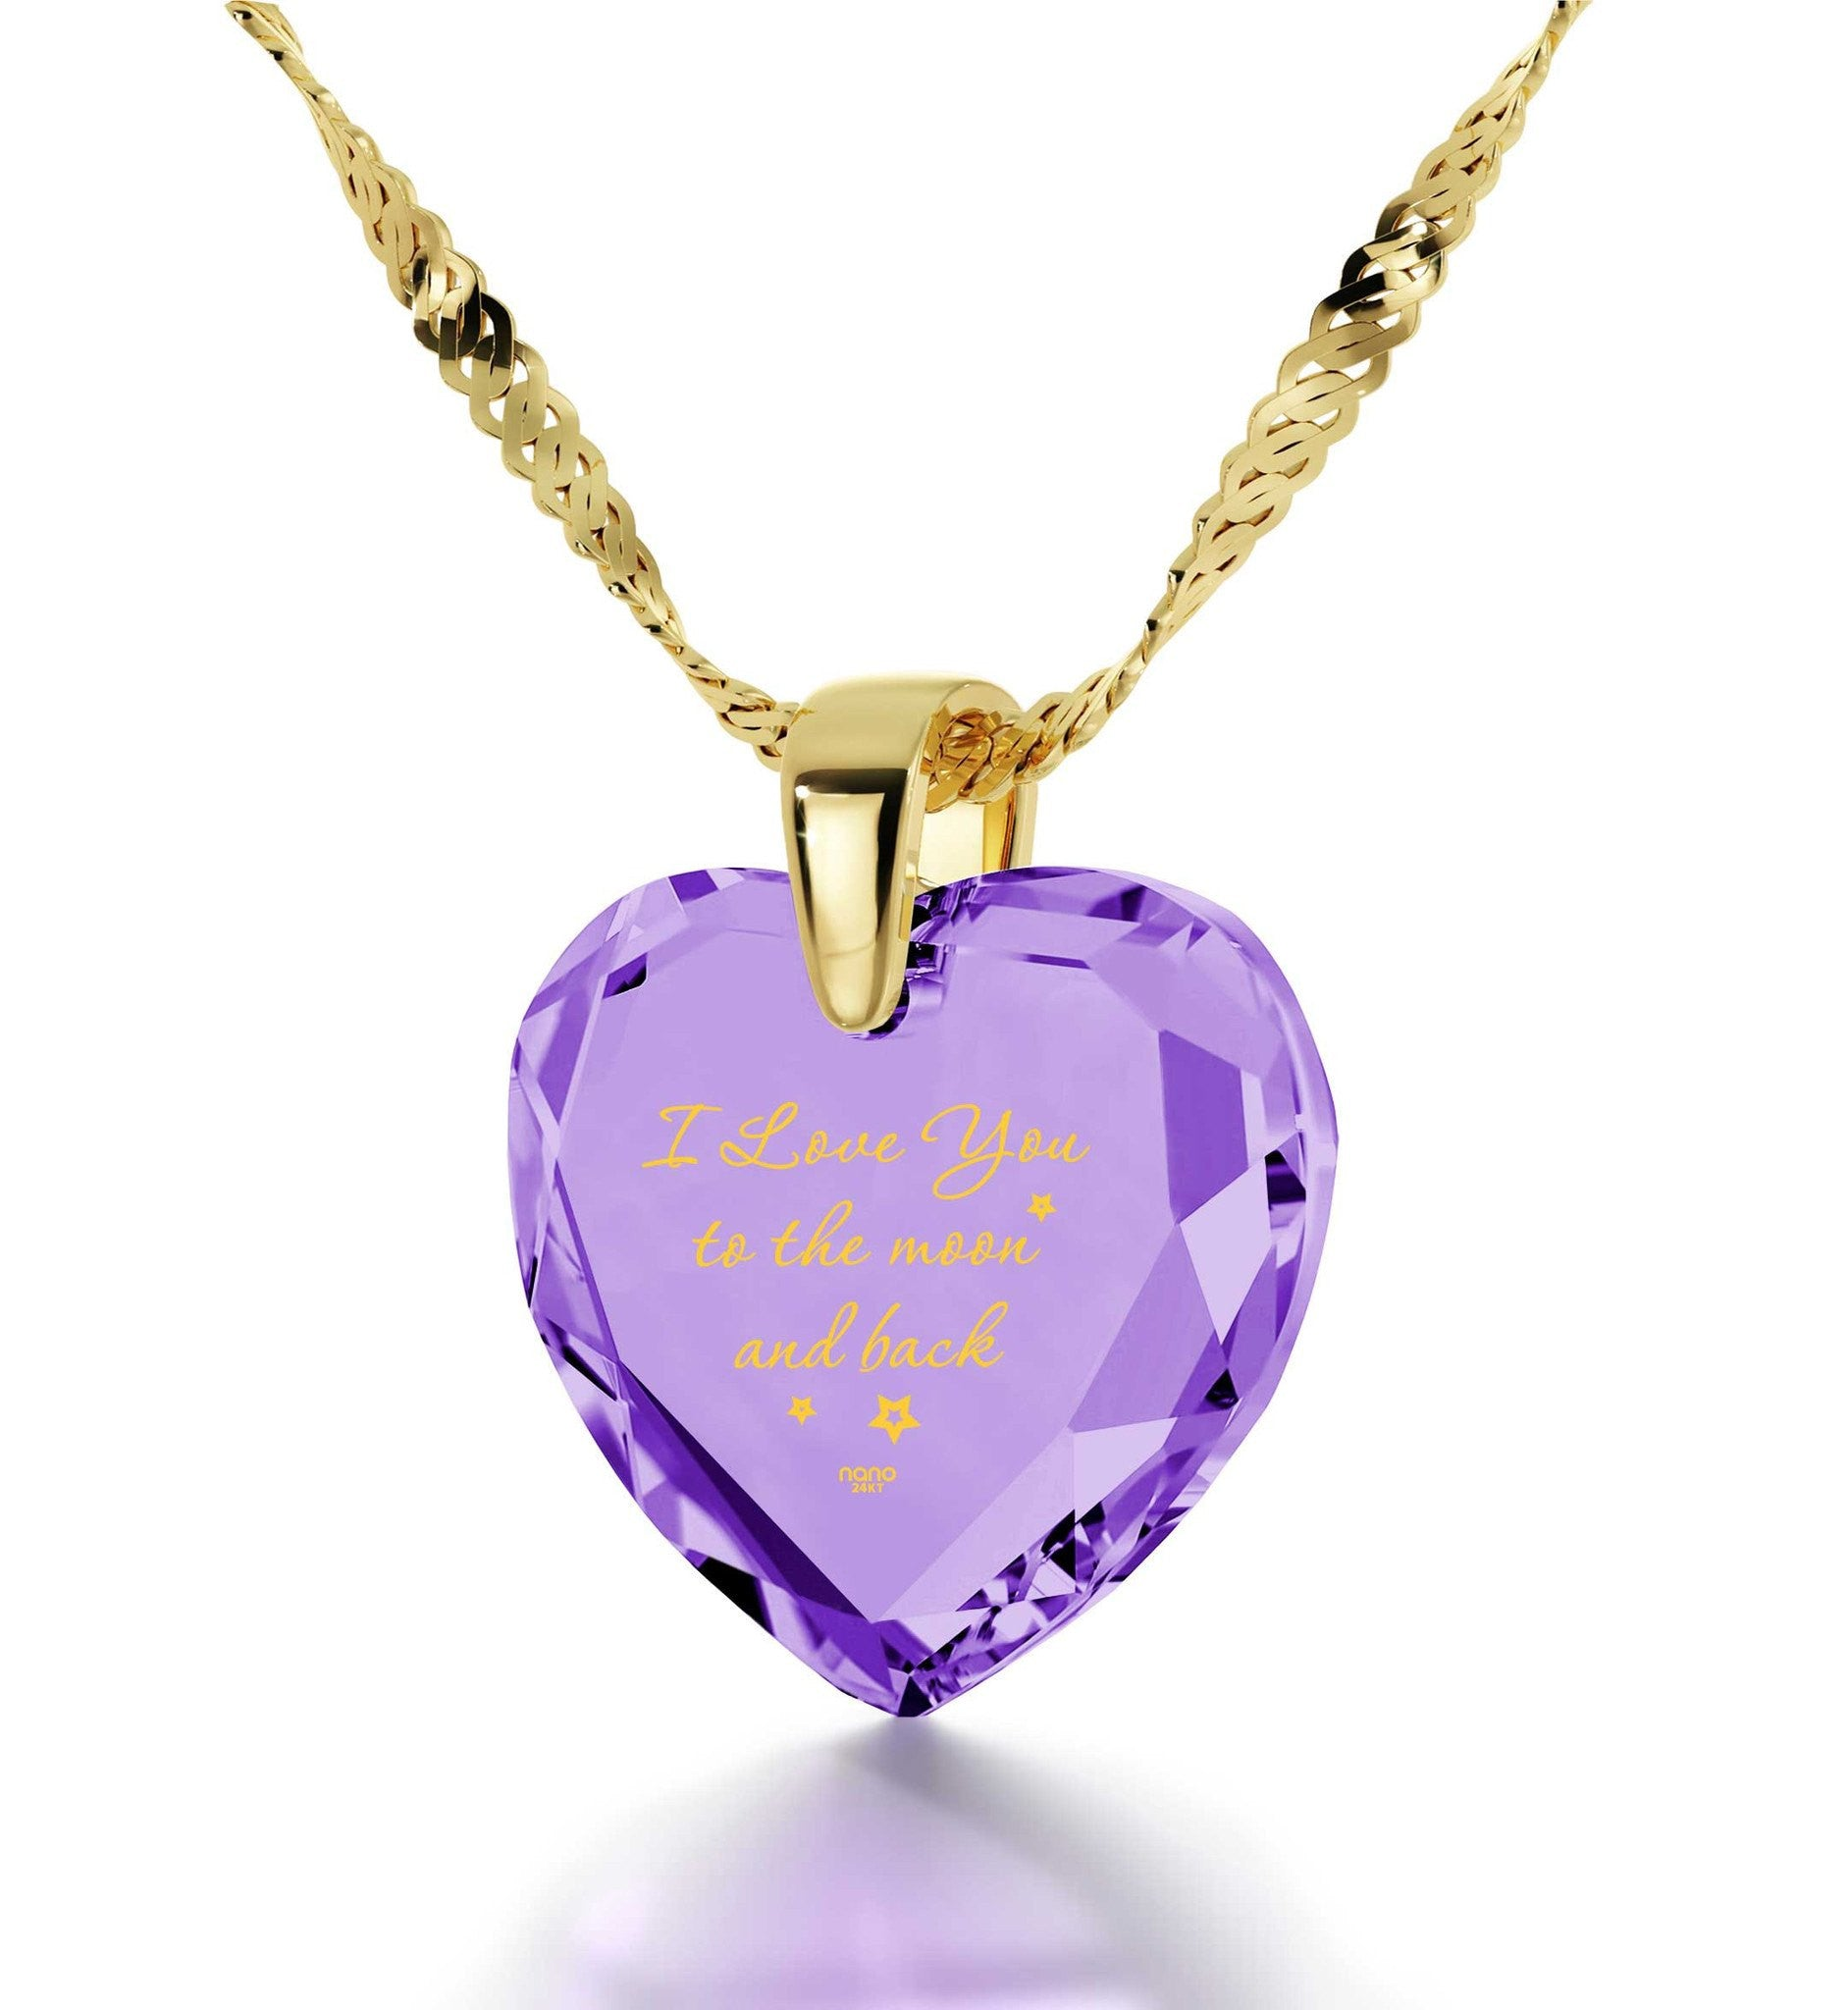 """What to Get Girlfriend for Birthday, 24k Engraved Jewelry, Gold Filled Chain, Valentine Gift for Wife, Nano """